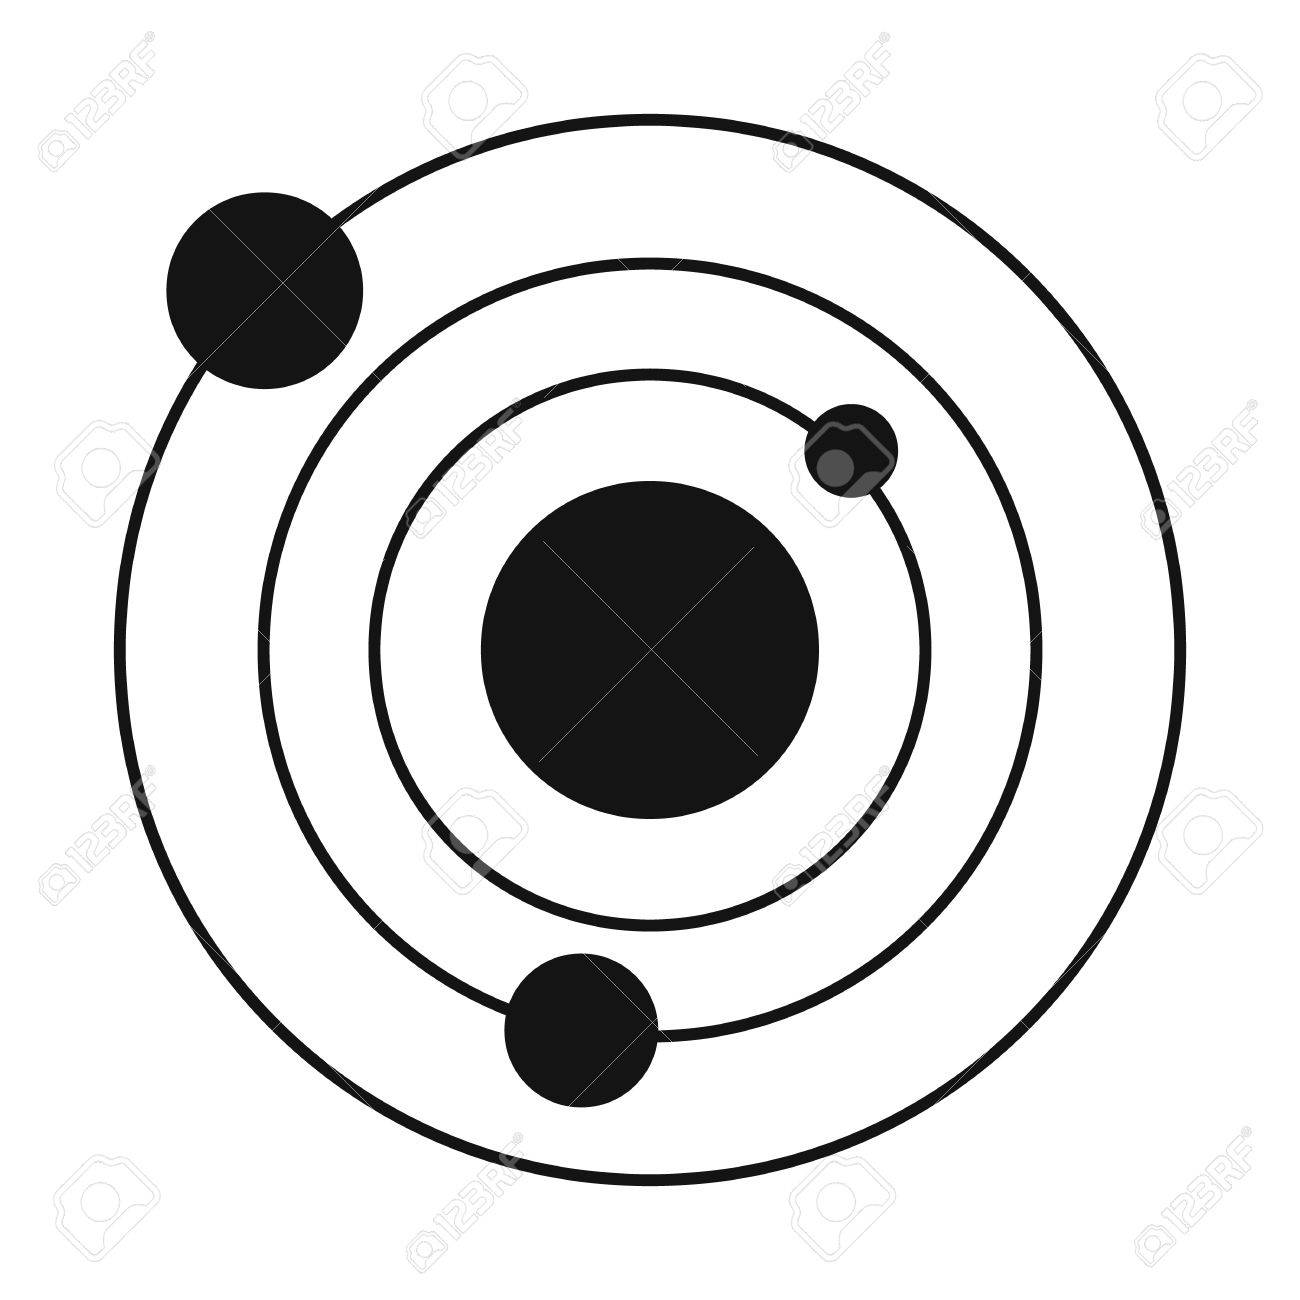 solar system black simple icon isolated on white background royalty rh 123rf com planets in our solar system clipart planets in our solar system clipart